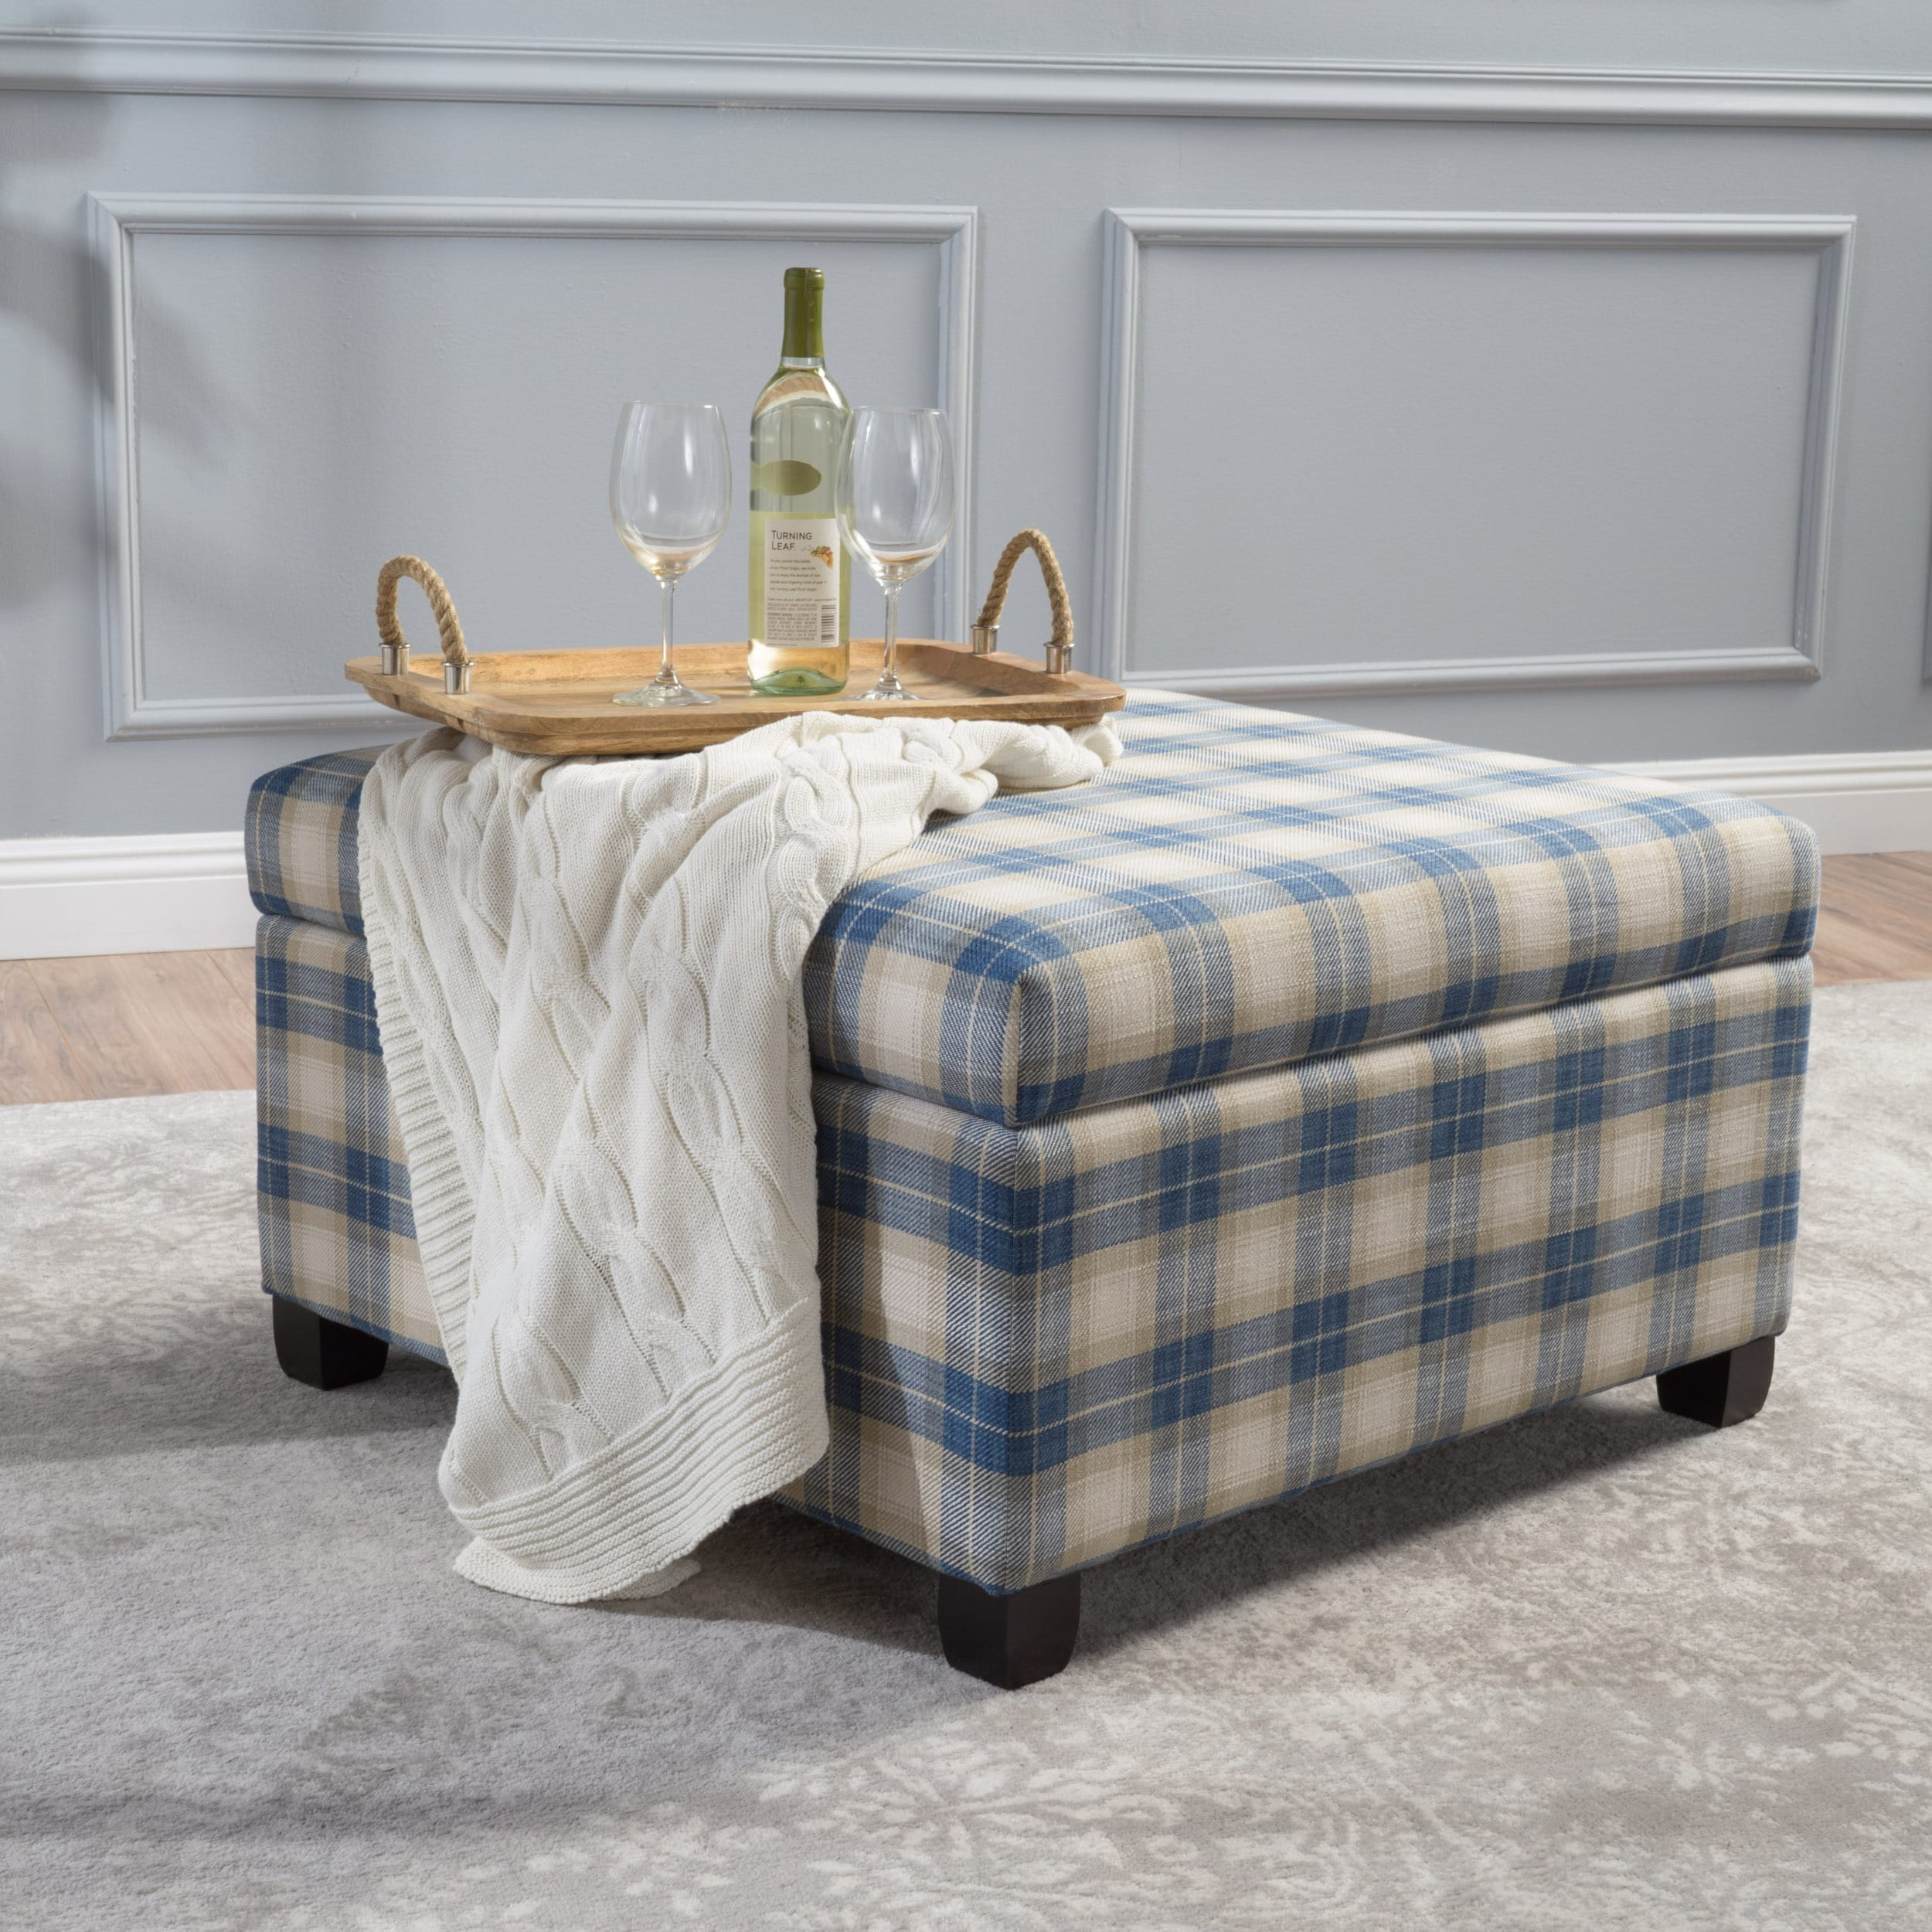 Prime Matteo Plaid Pattern Fabric Square Storage Ottoman Bench By Christopher Knight Home Machost Co Dining Chair Design Ideas Machostcouk